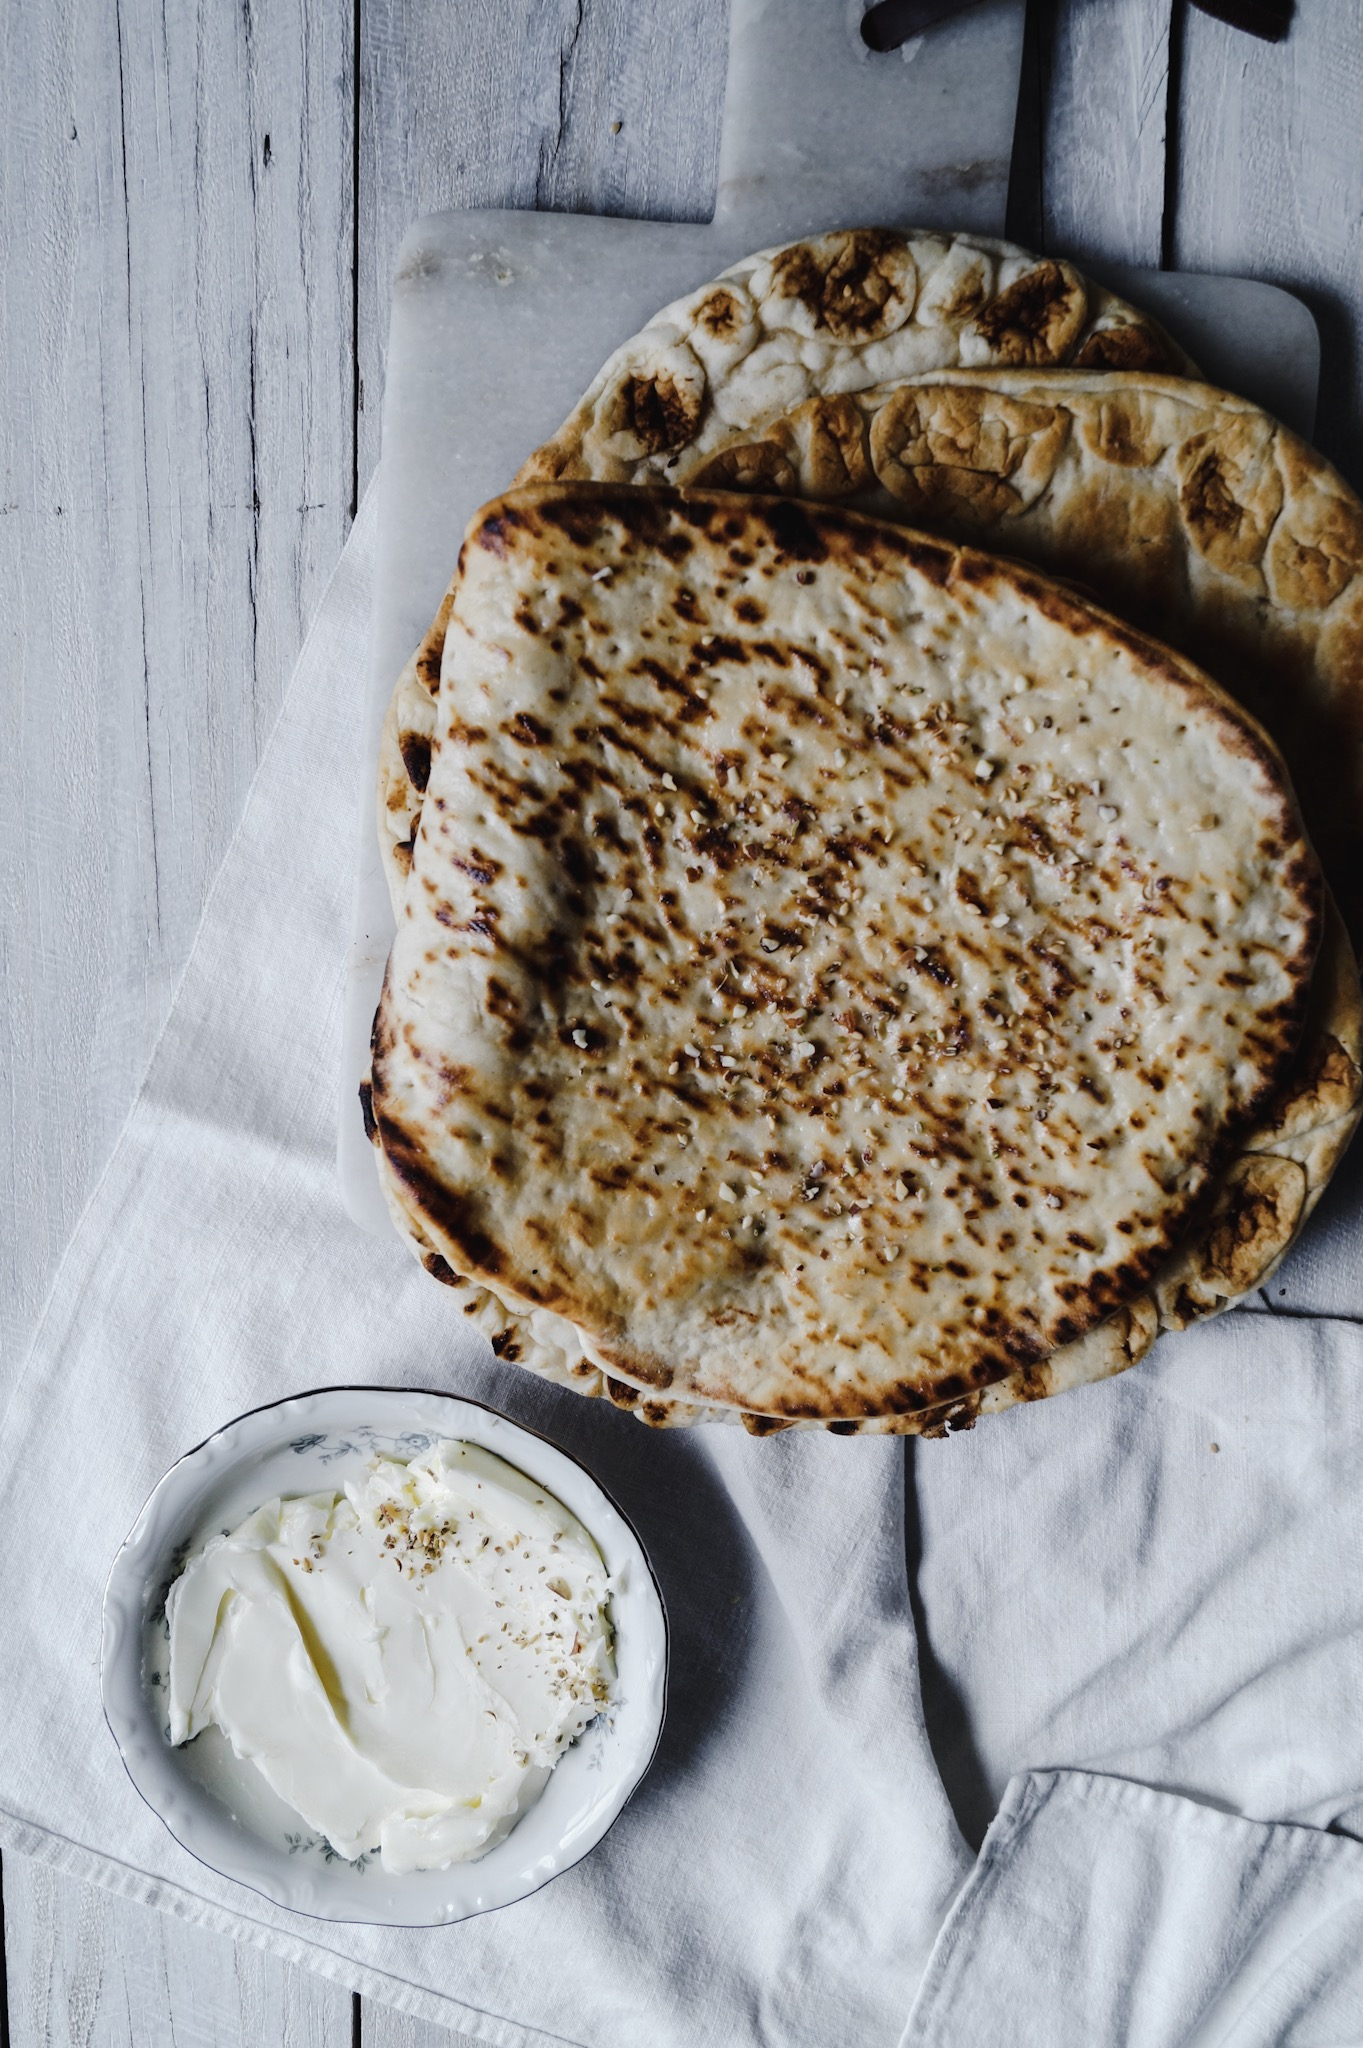 naan bread with melted butter and dukkah spice.